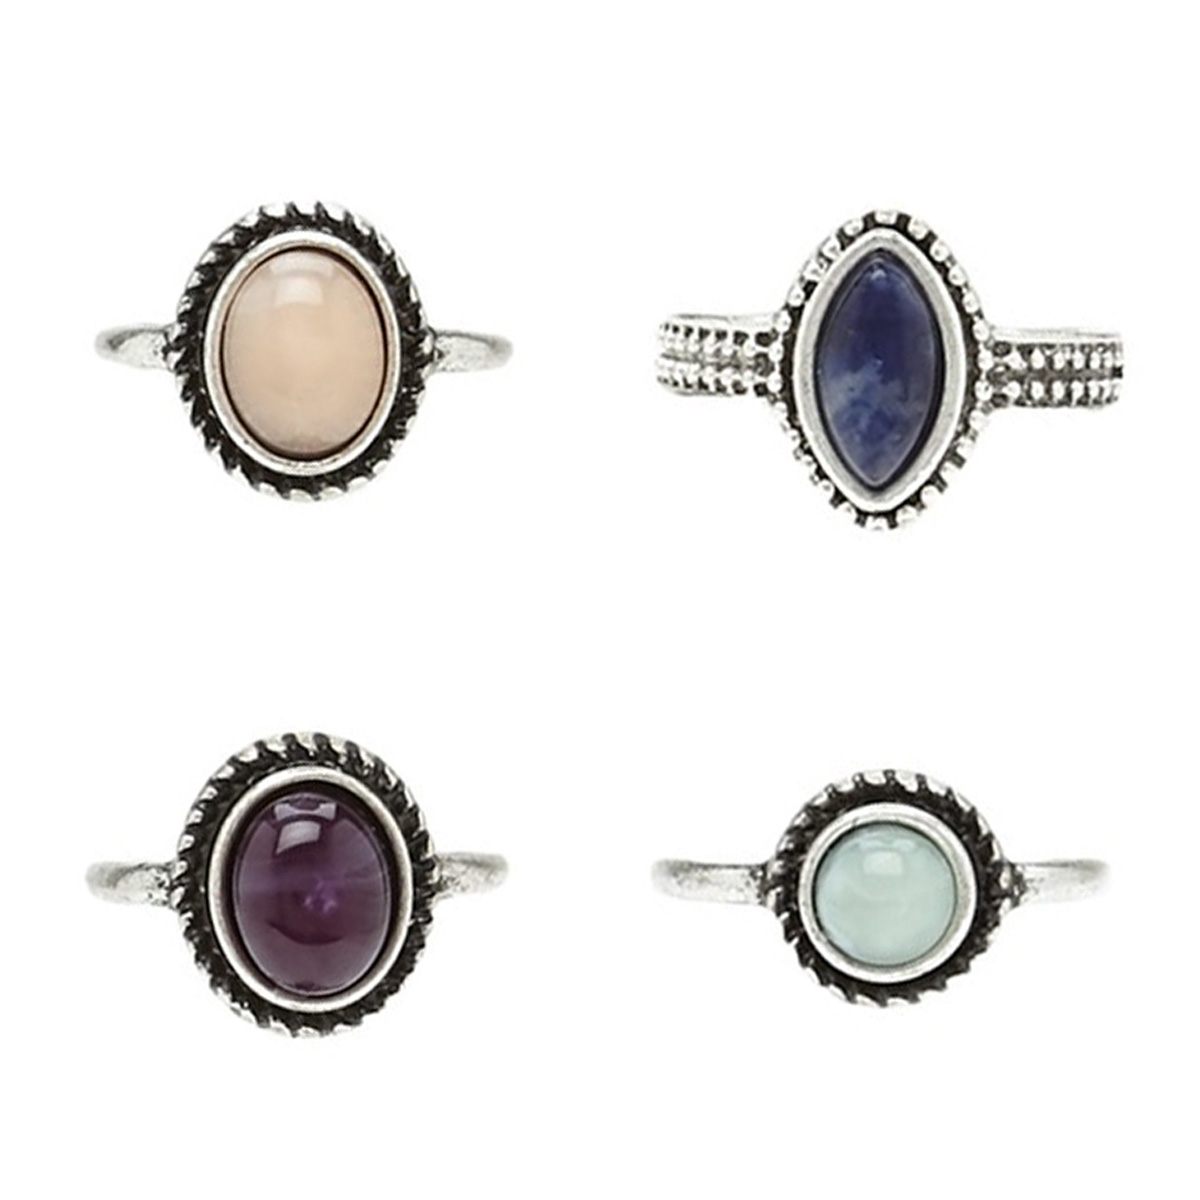 4 Pcs/Set Antique Silver Bohemian Midi Ring Set Crystal Stone Vintage Steampunk Anillos Knuckle Rings For Women Boho Jewelry